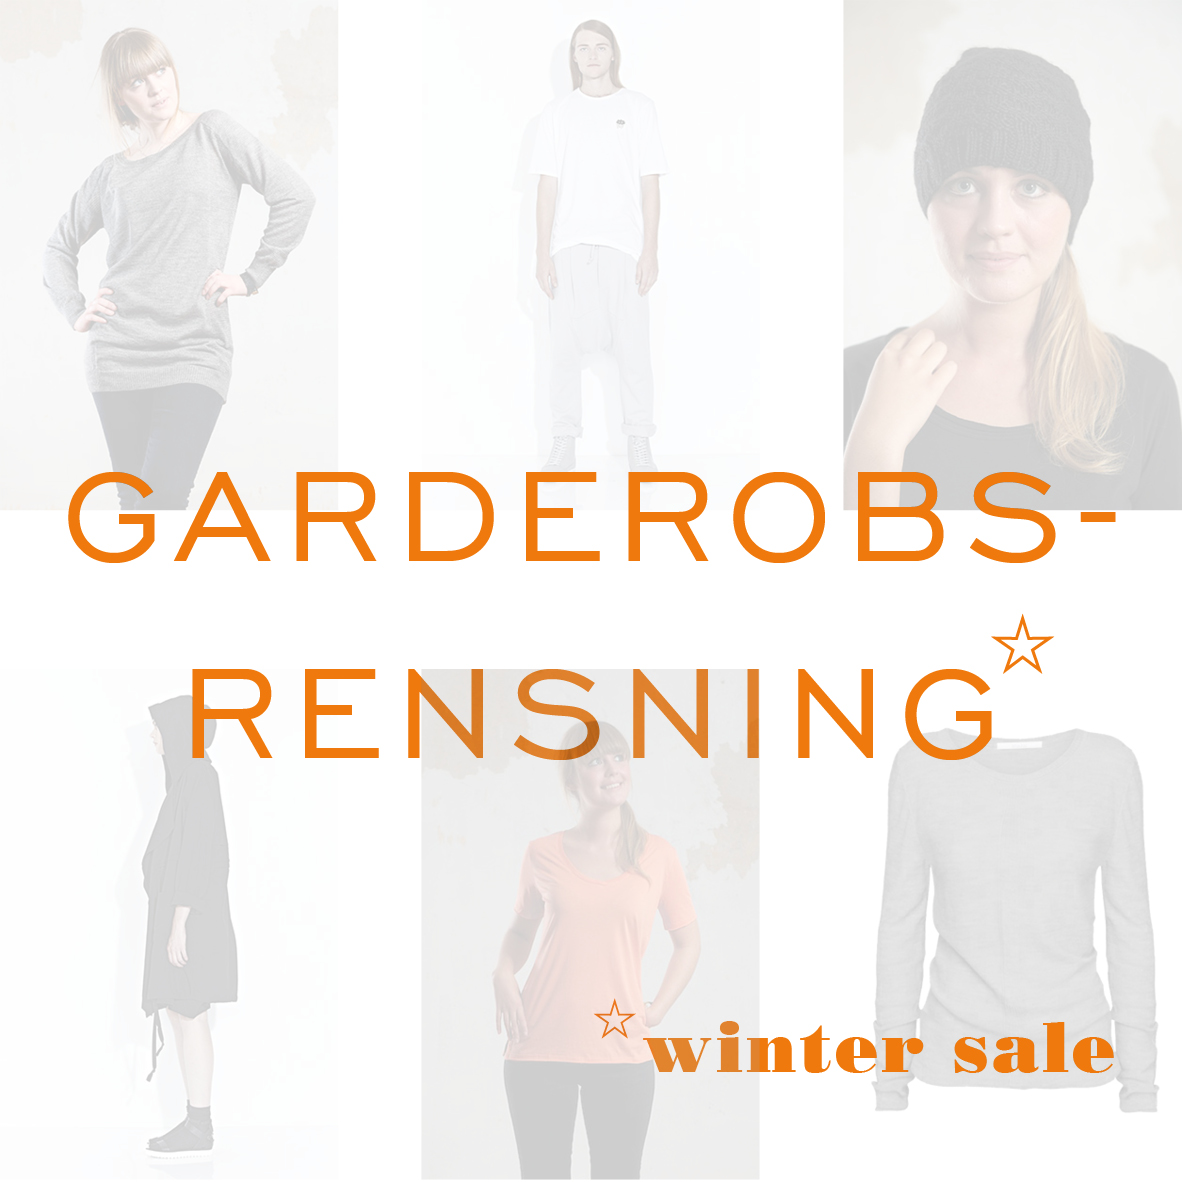 Garderobsrensning winter sale 2014